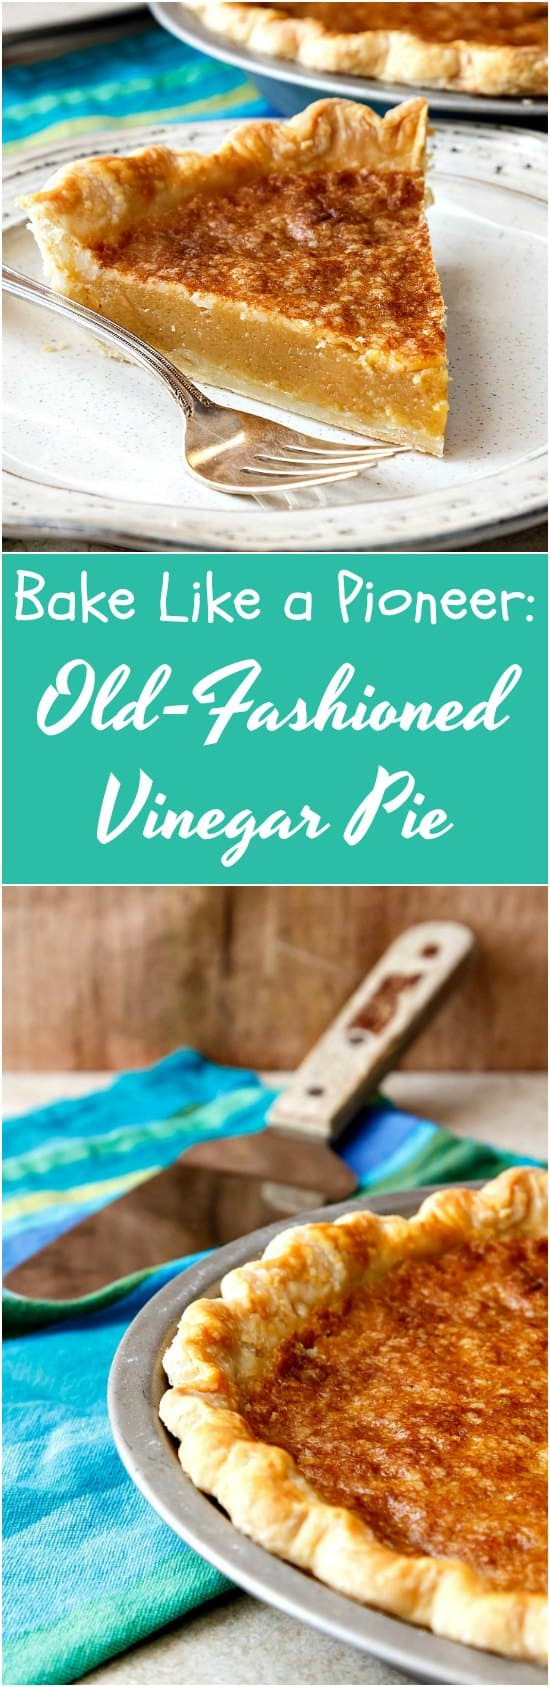 """long pin image for vinegar pie. Text reads """"Bake Like a Pioneer: Old-Fashioned Vinegar Pie"""""""